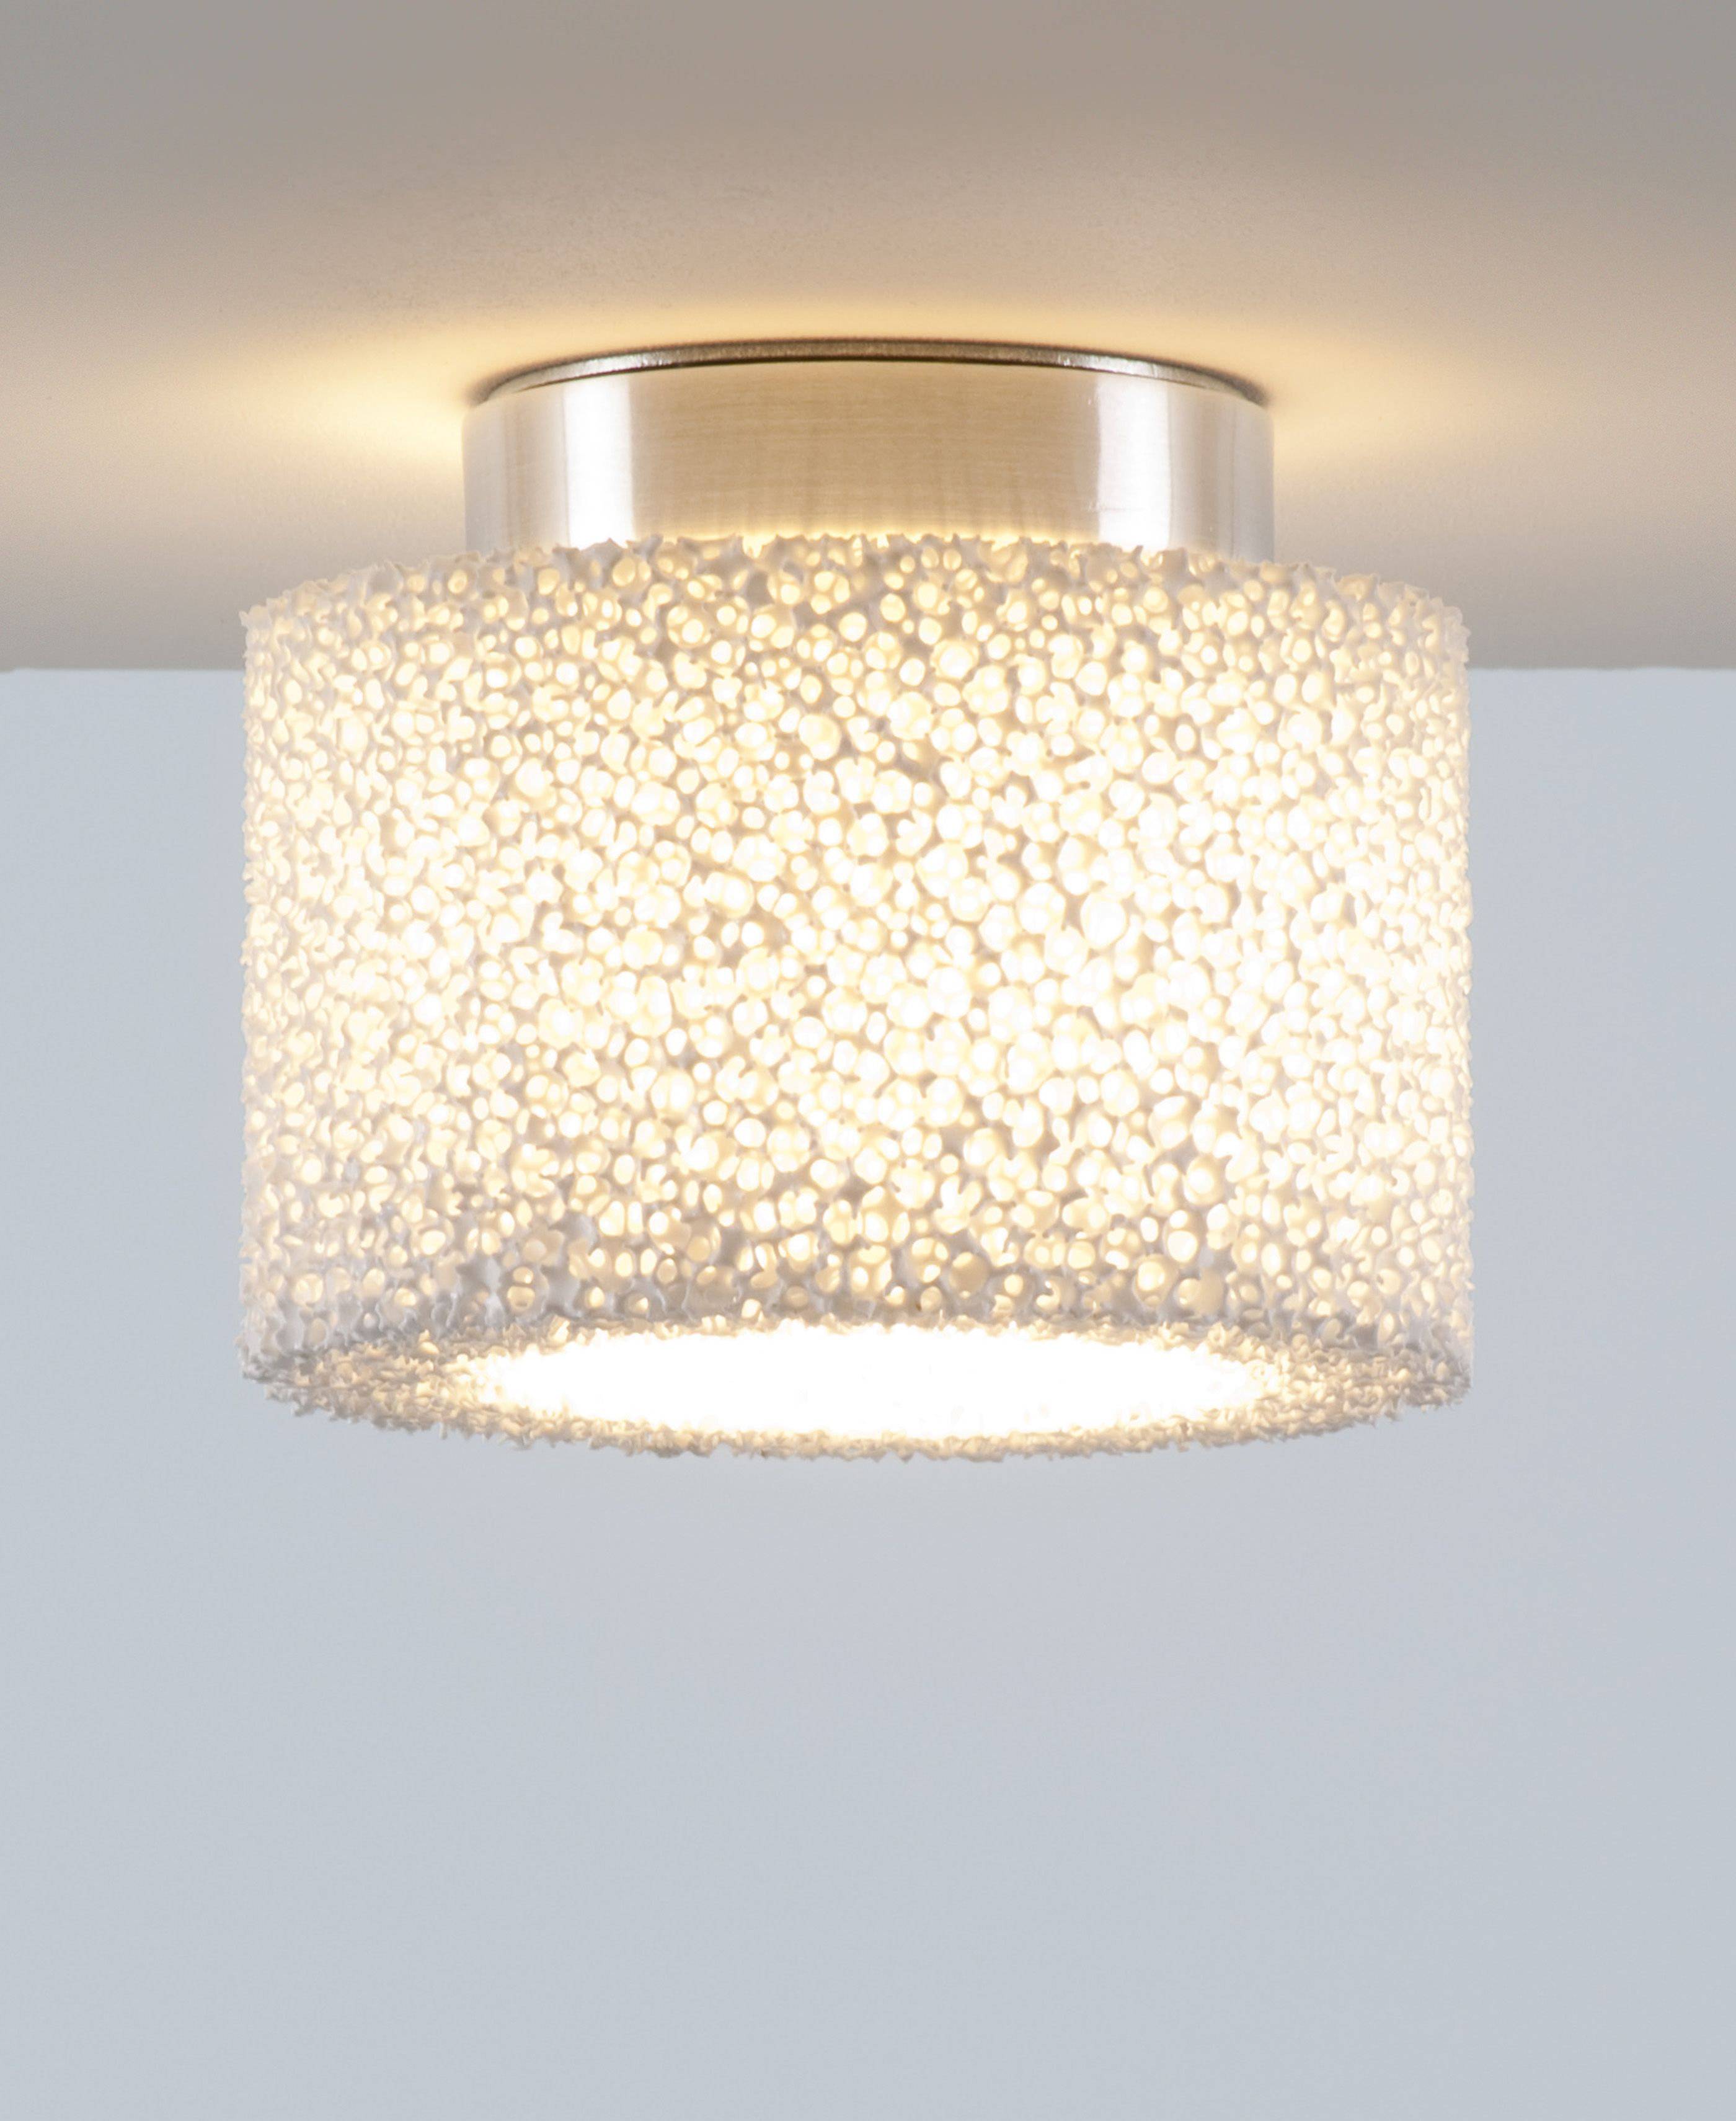 Serien Lighting Reef serien lighting reef ceiling ceiling and ceilings